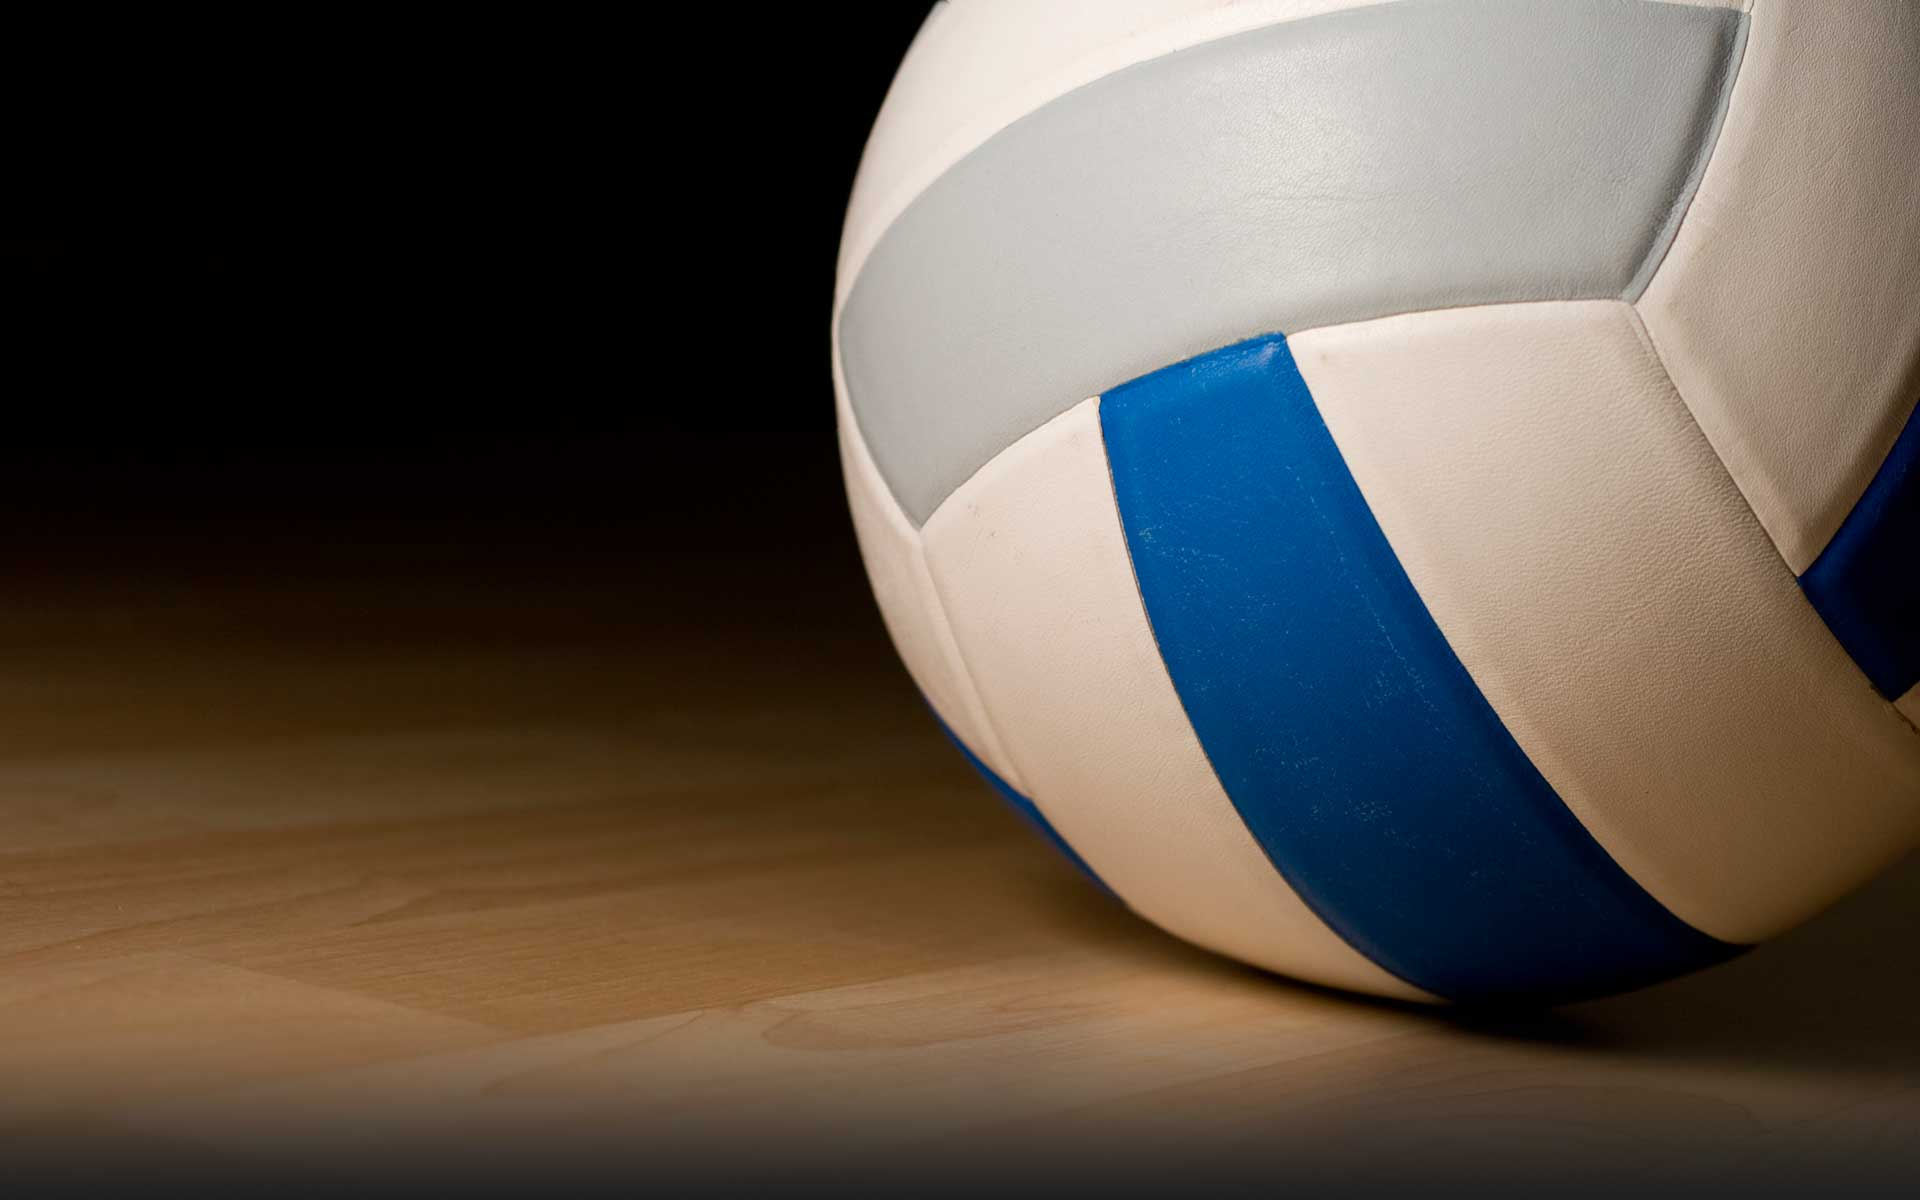 Several law enforcement and Fire & EMS teams will take part in a volleyball tournament today to raise funds for diabetes research.